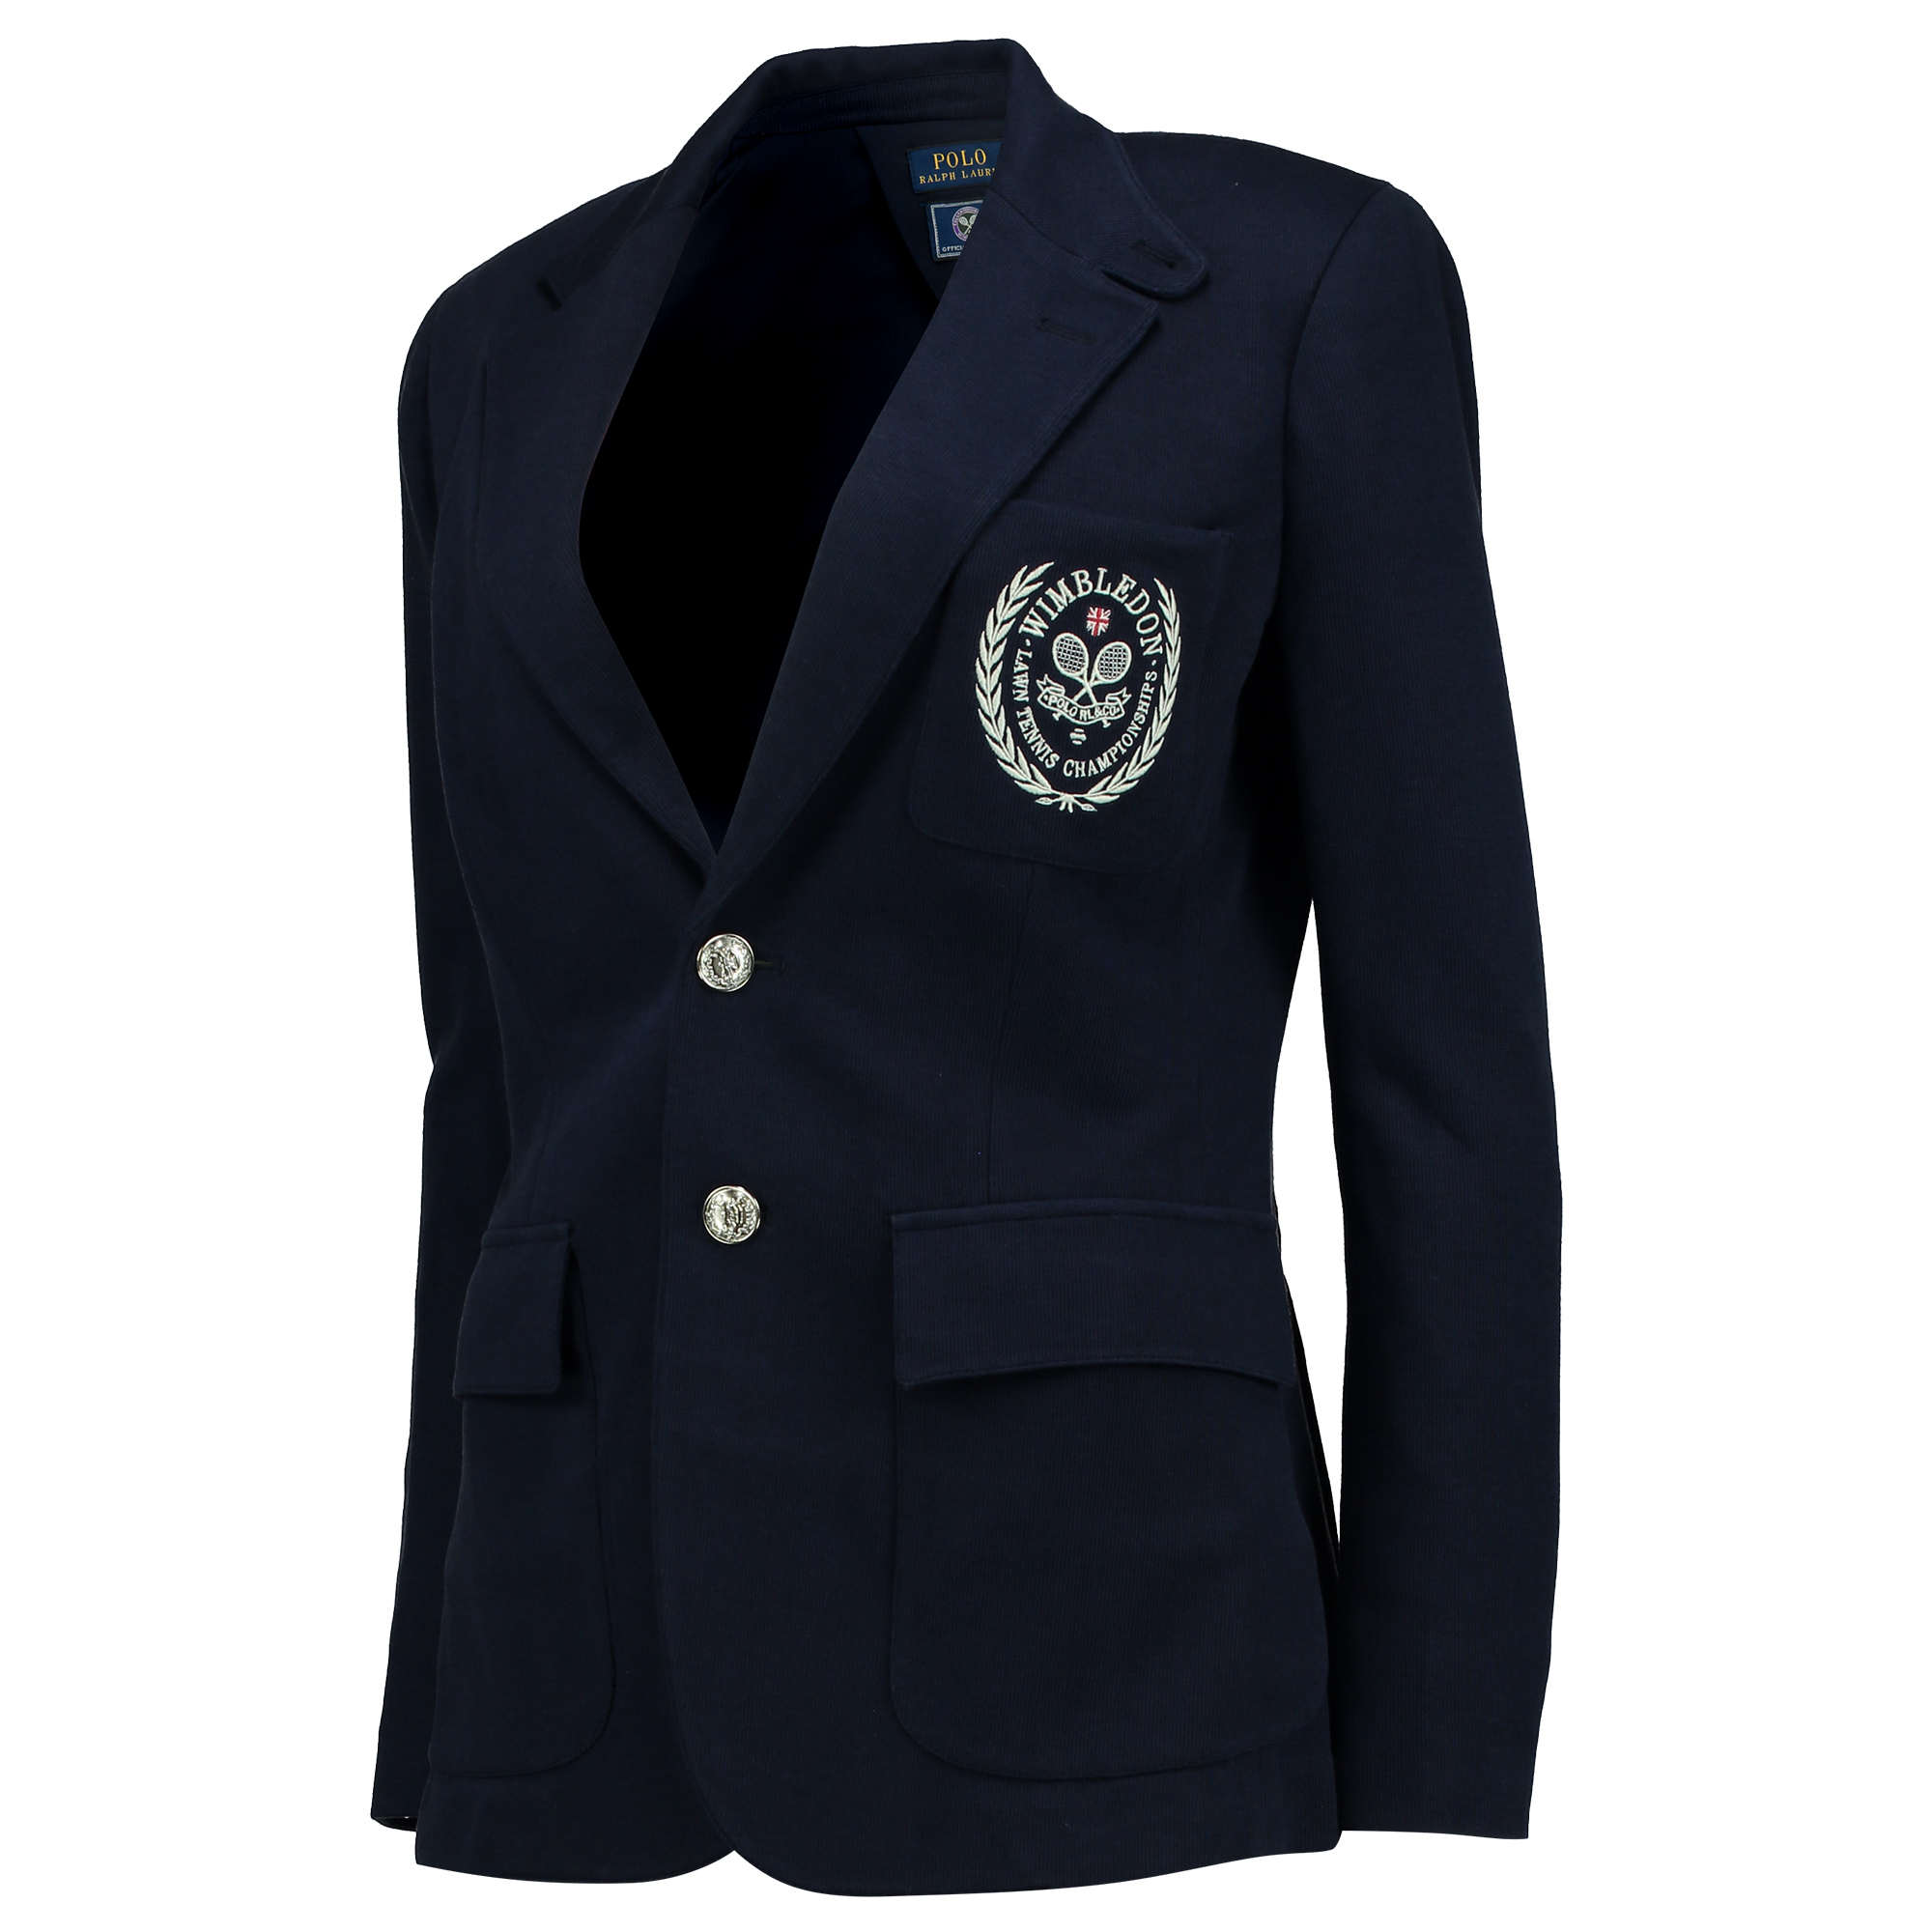 Wimbledon Ralph Lauren Blazer - French Navy - Ladies